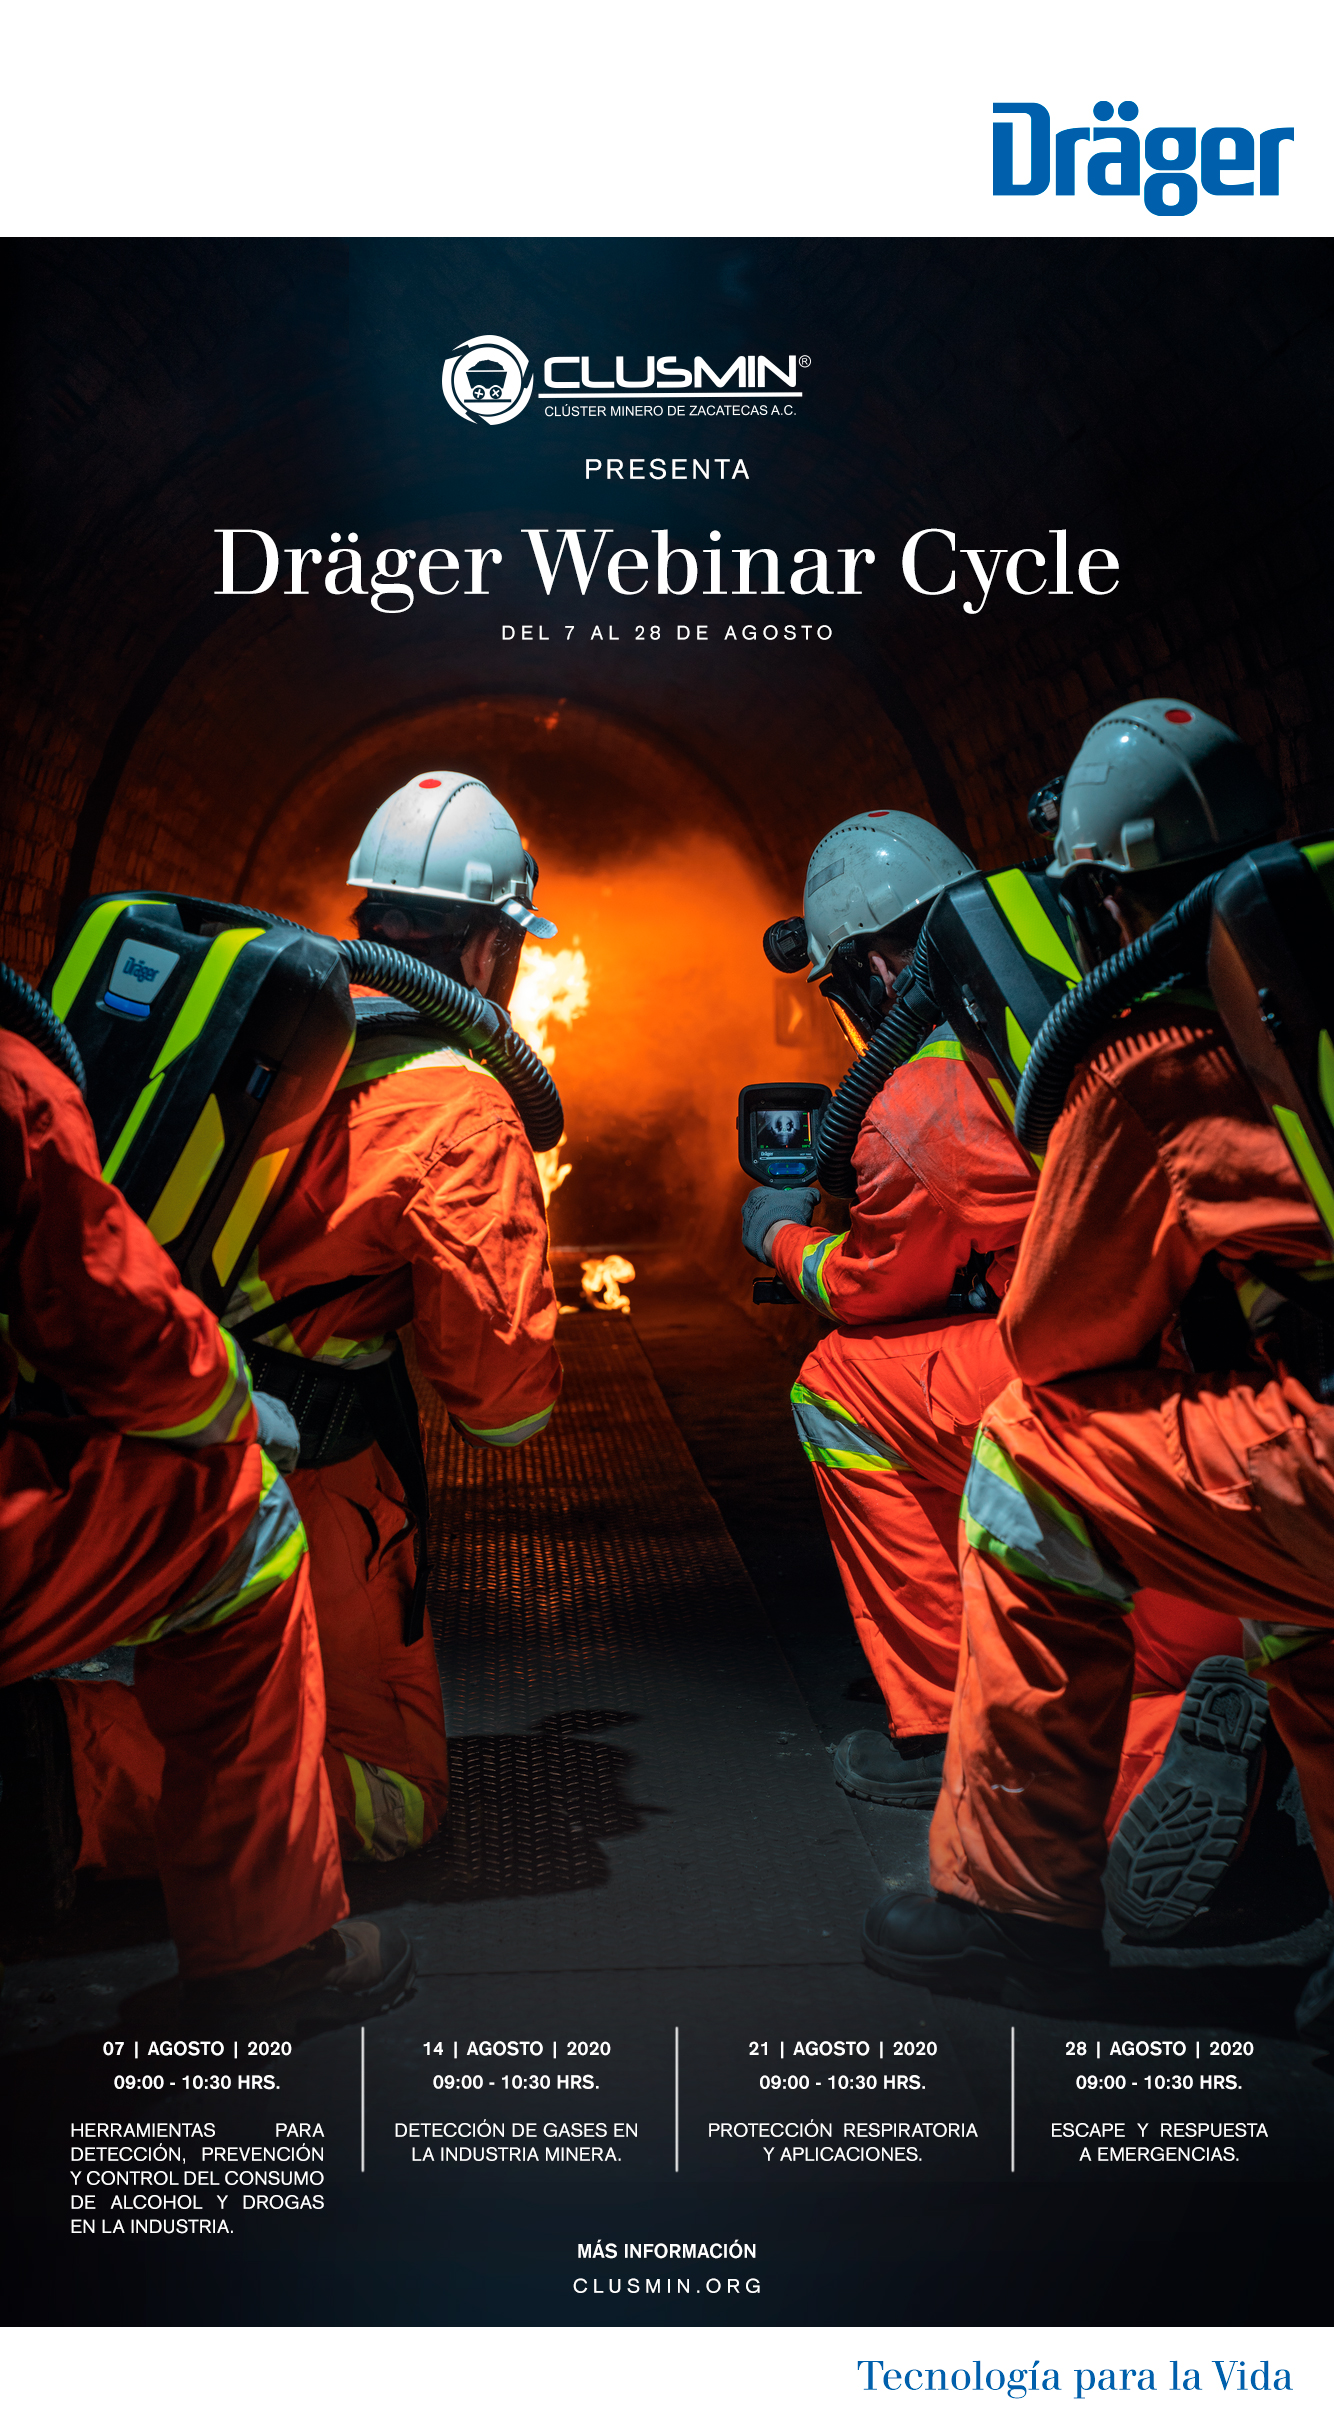 Dr-ger-webinar-cycle2